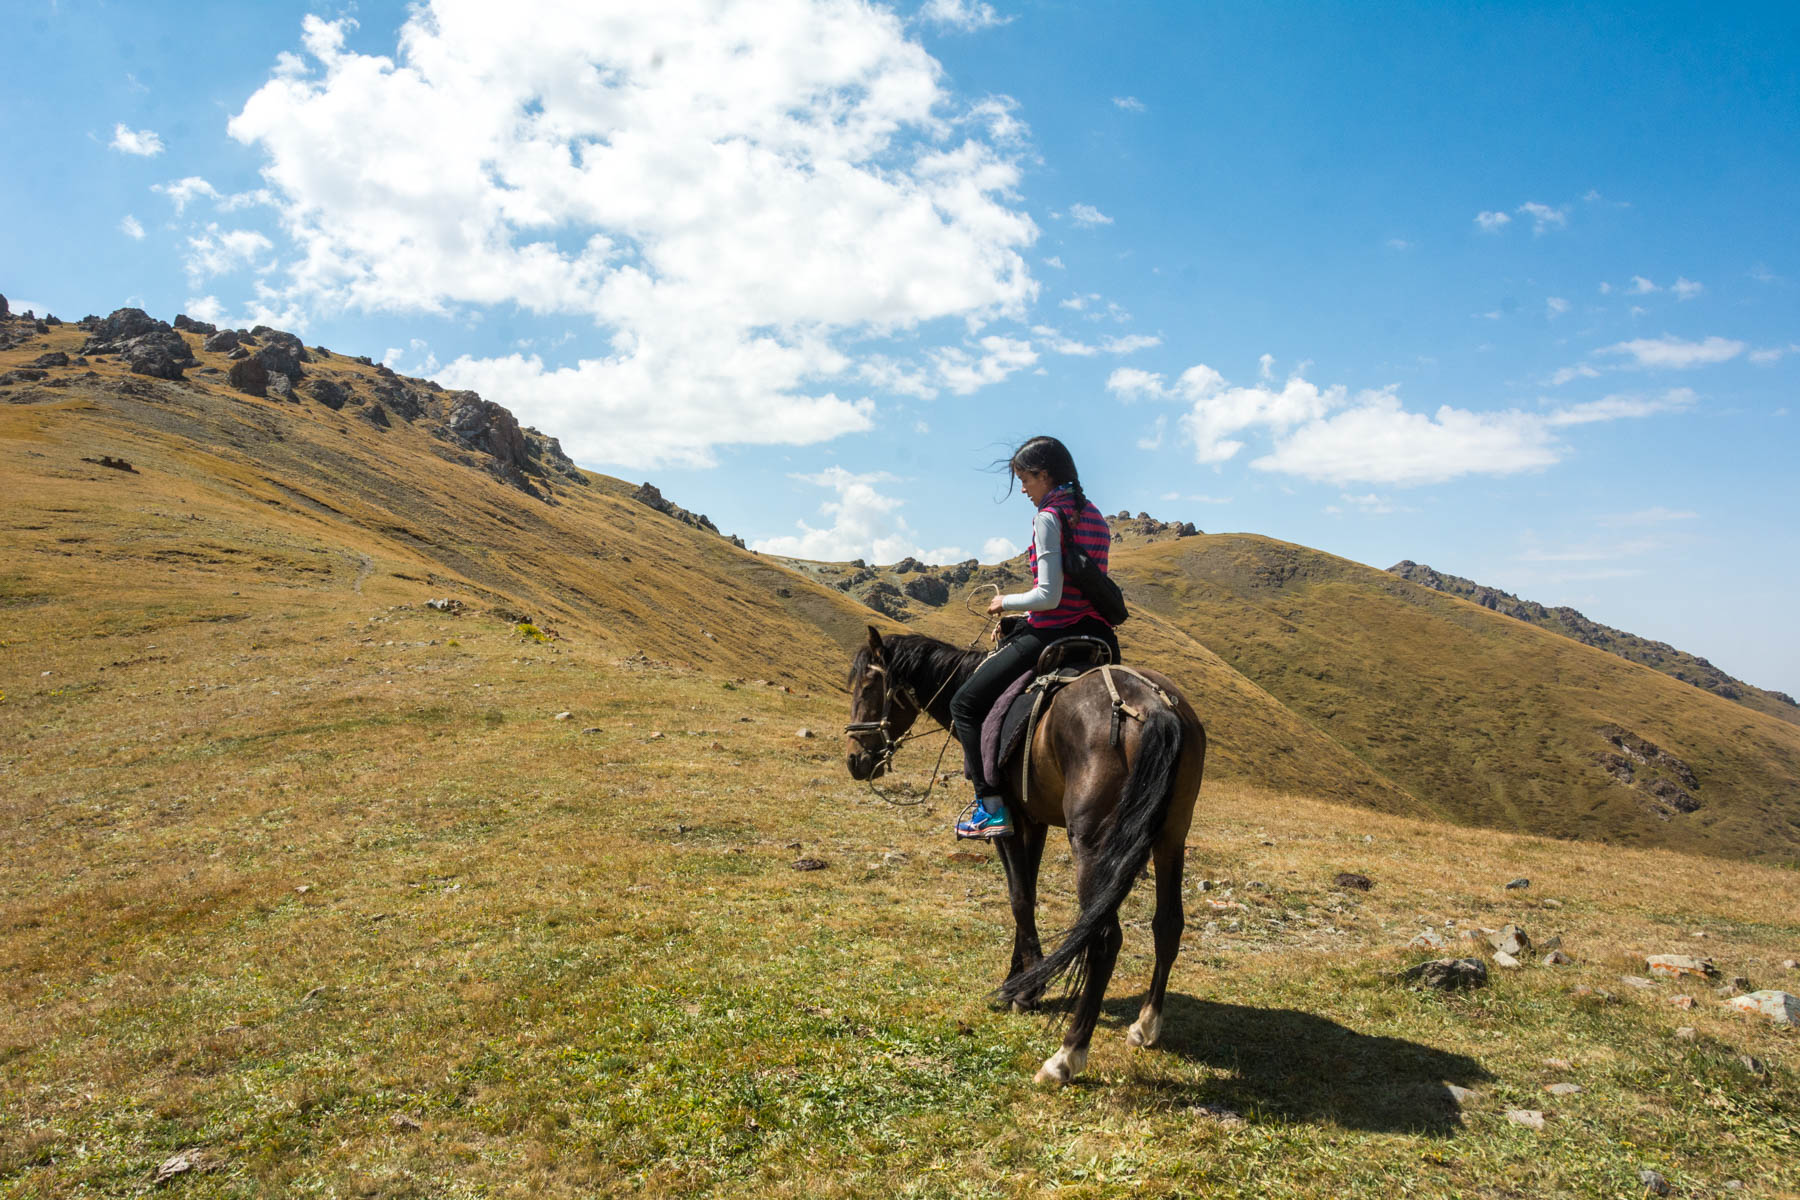 Alex riding a horse in Kyzart pass in Kyrgyzstan - Lost With Purpose